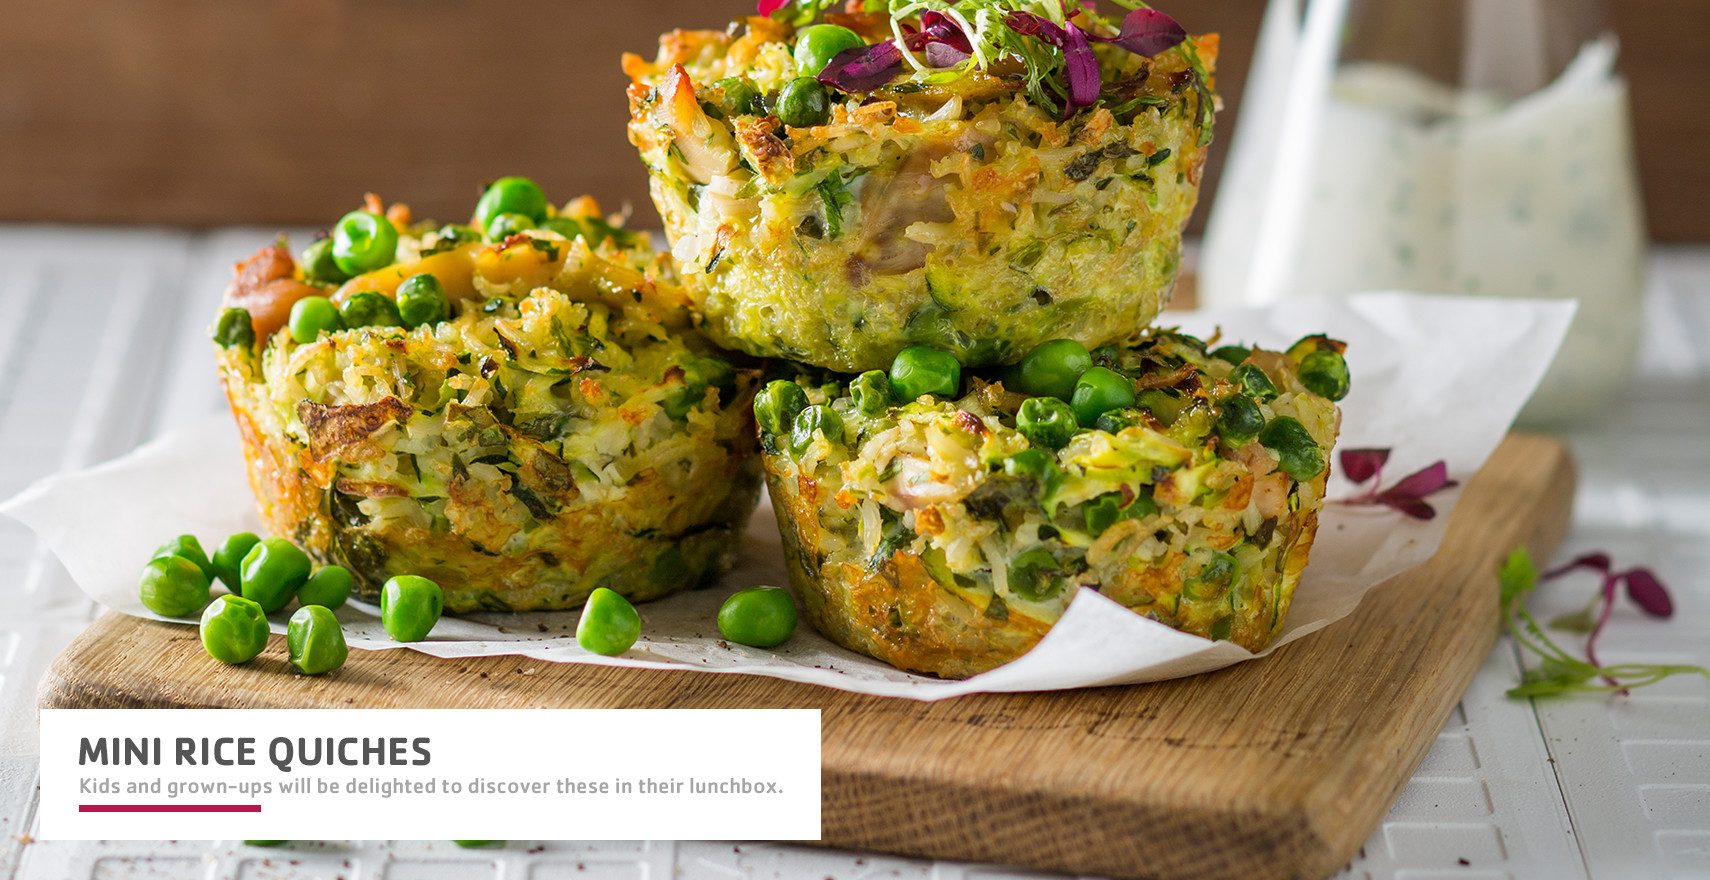 mini-rice-quiches.jpg